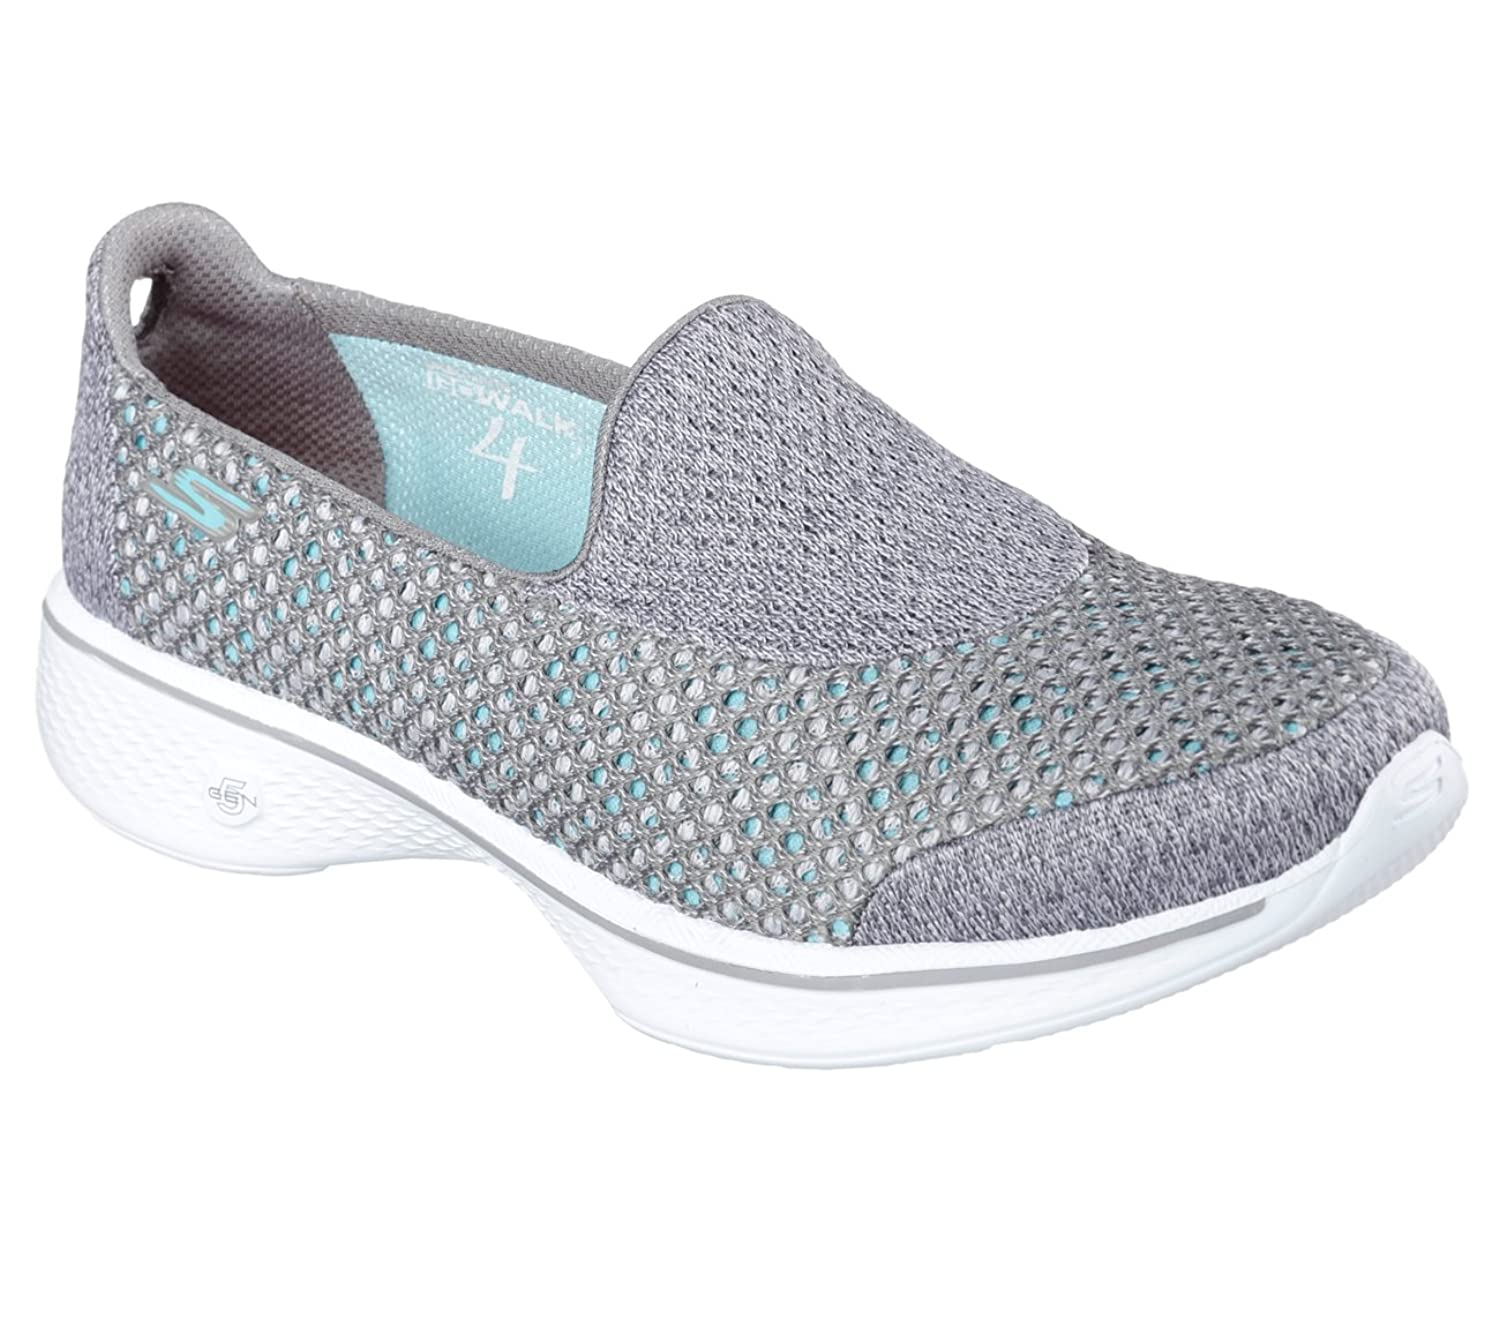 Skechers Gowalk 4 Tenne Slip On Sko Med Minne Skum bSTYN